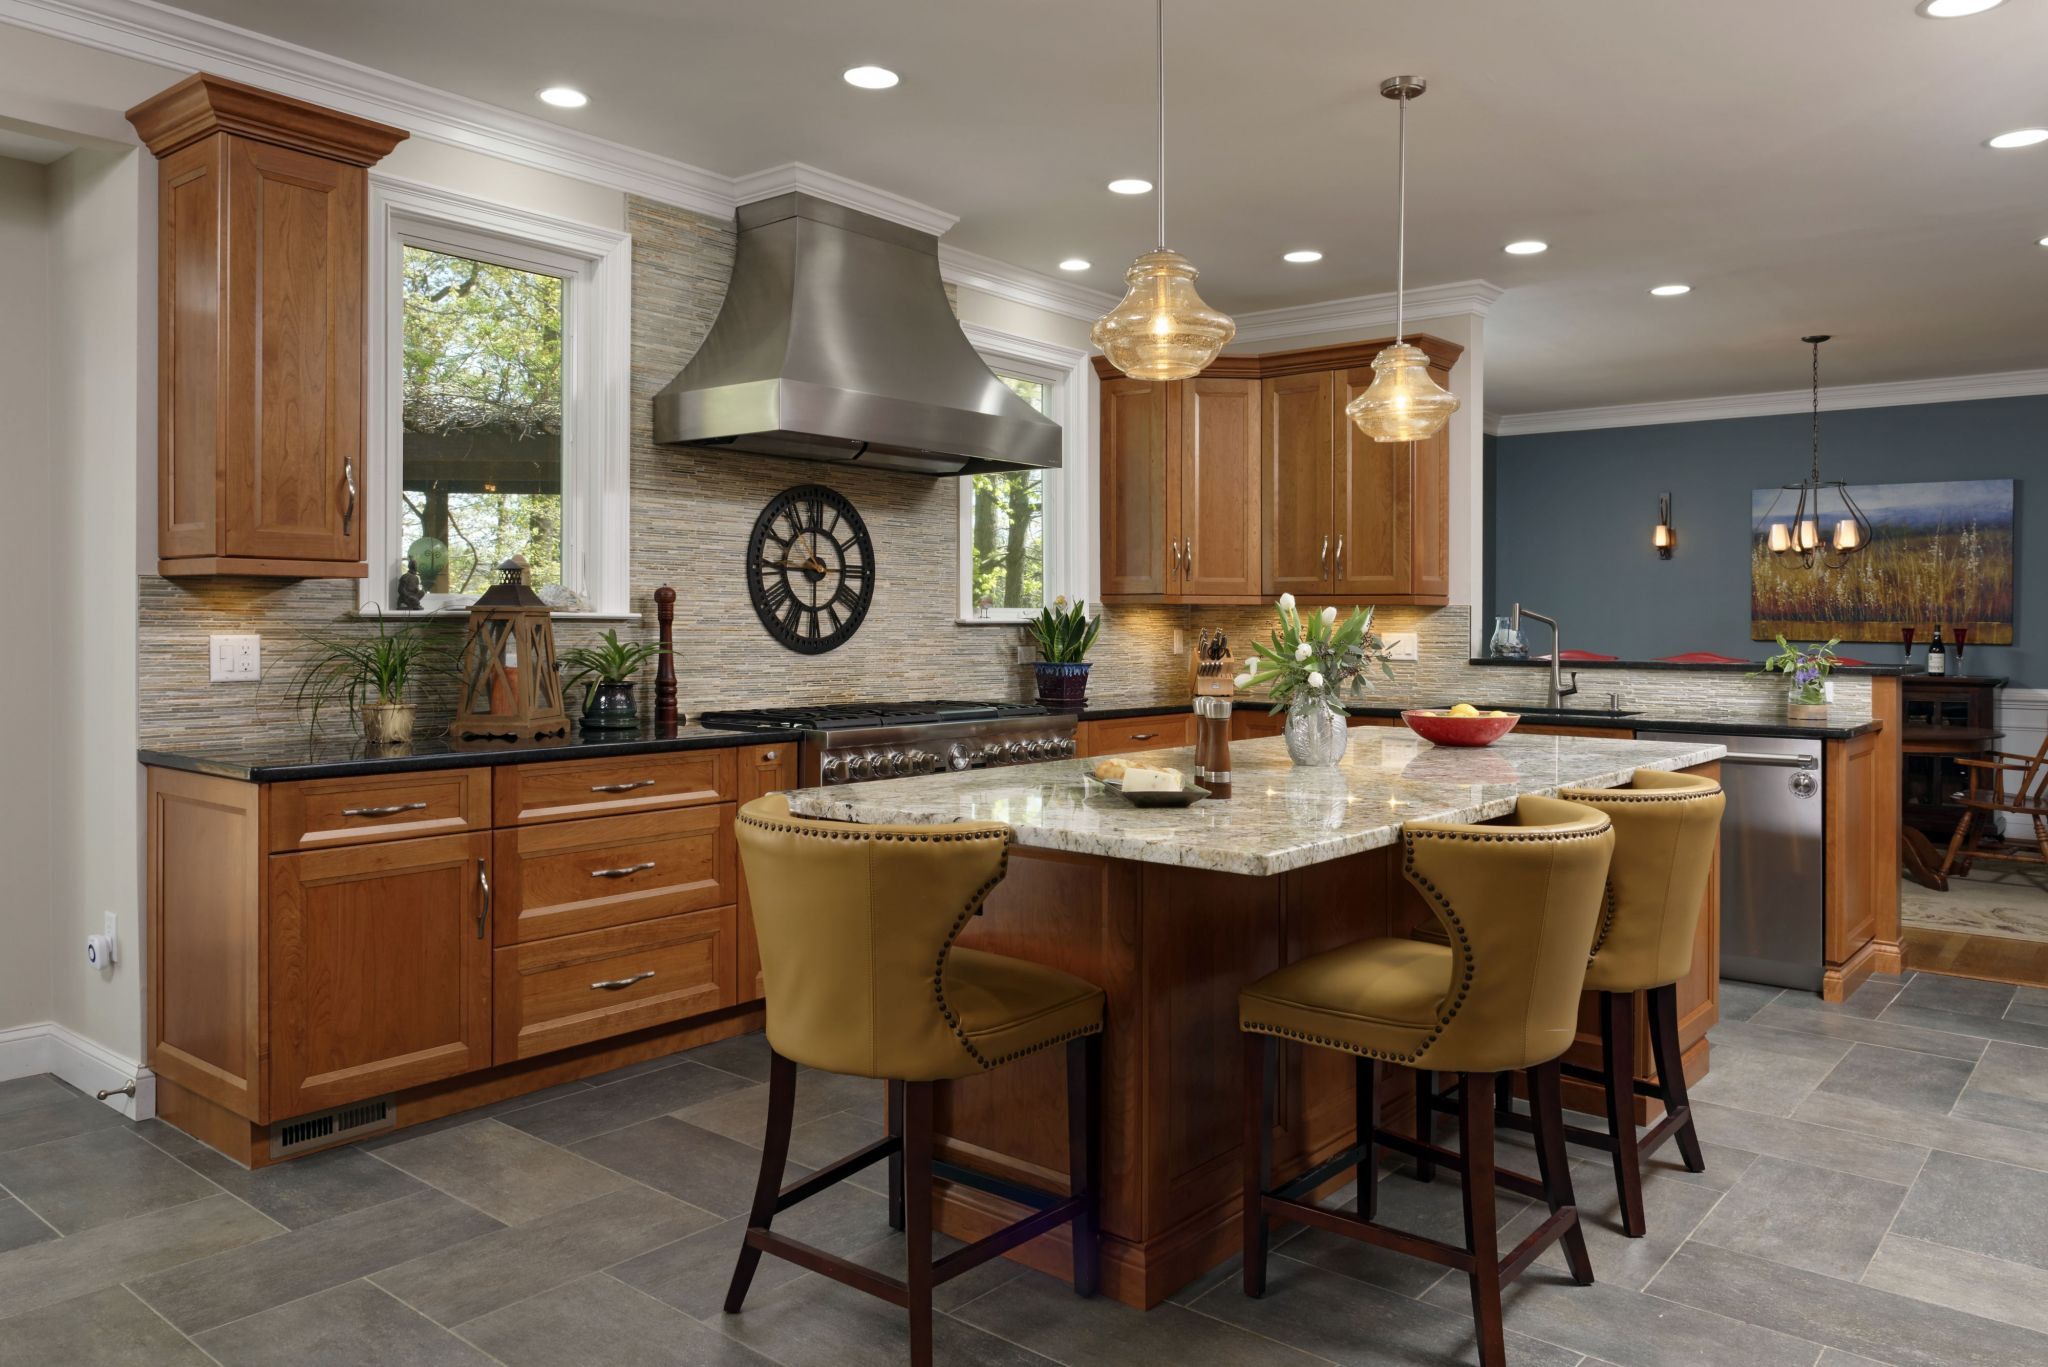 Stone Floor Kitchen | Metro Building & Remodeling Group | No. VA, DC, MD